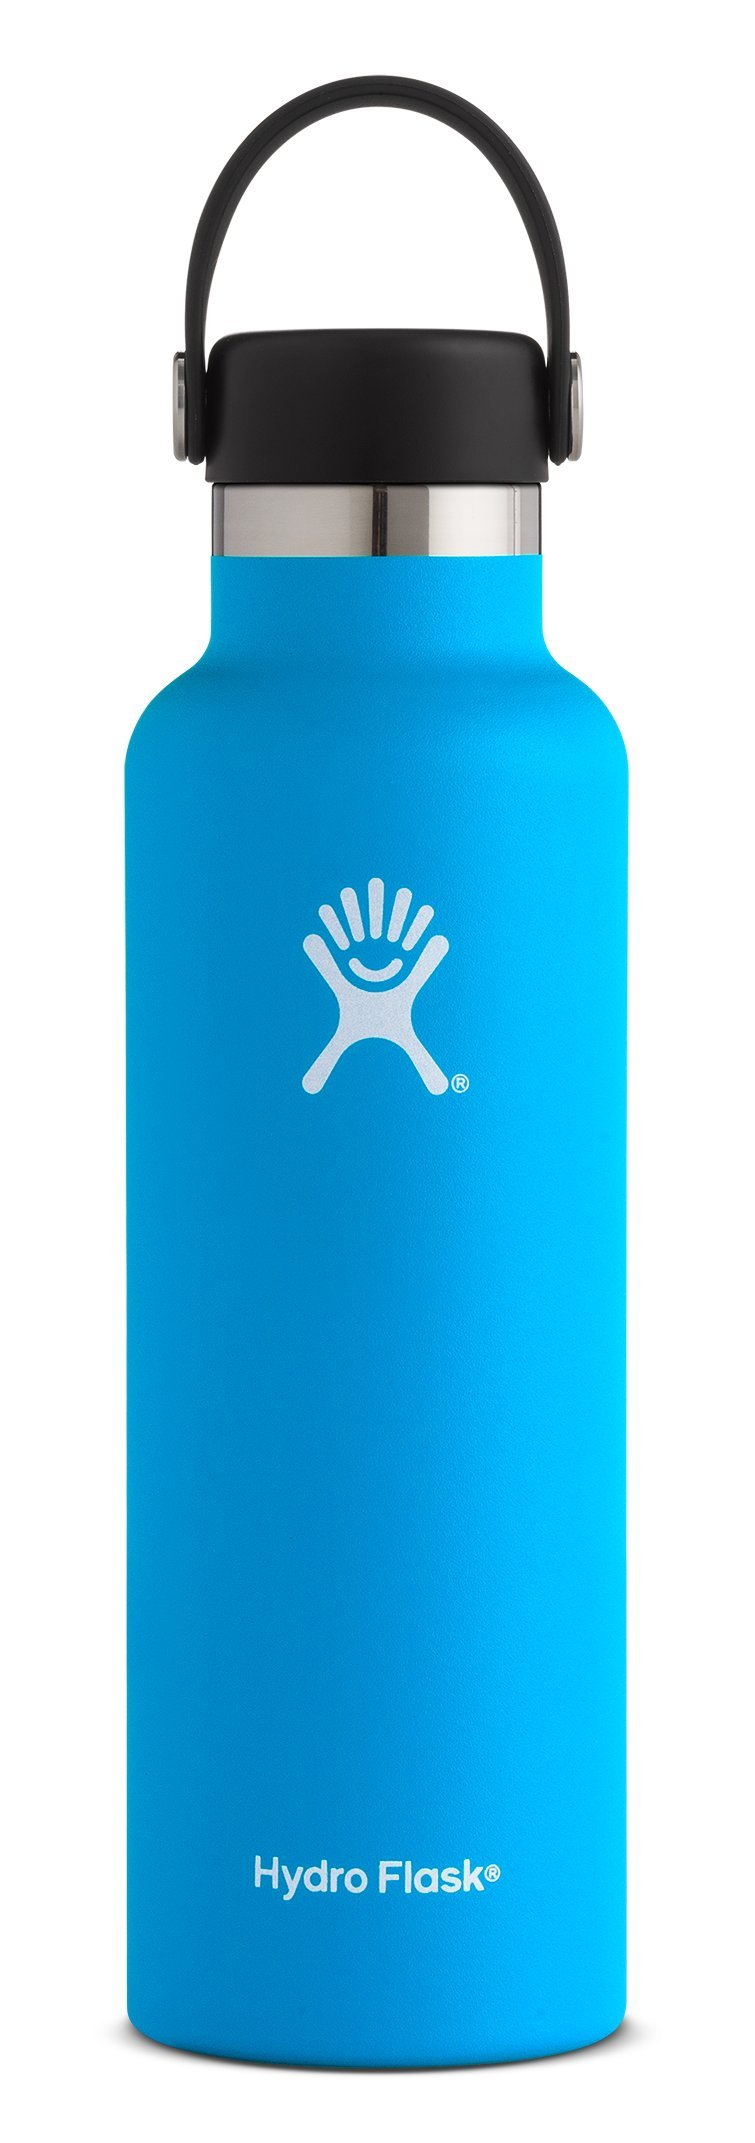 Hydro Flask SYNCHKG096807 Mouth 21 oz. Standard Water Bottle (621 ml), Pacific